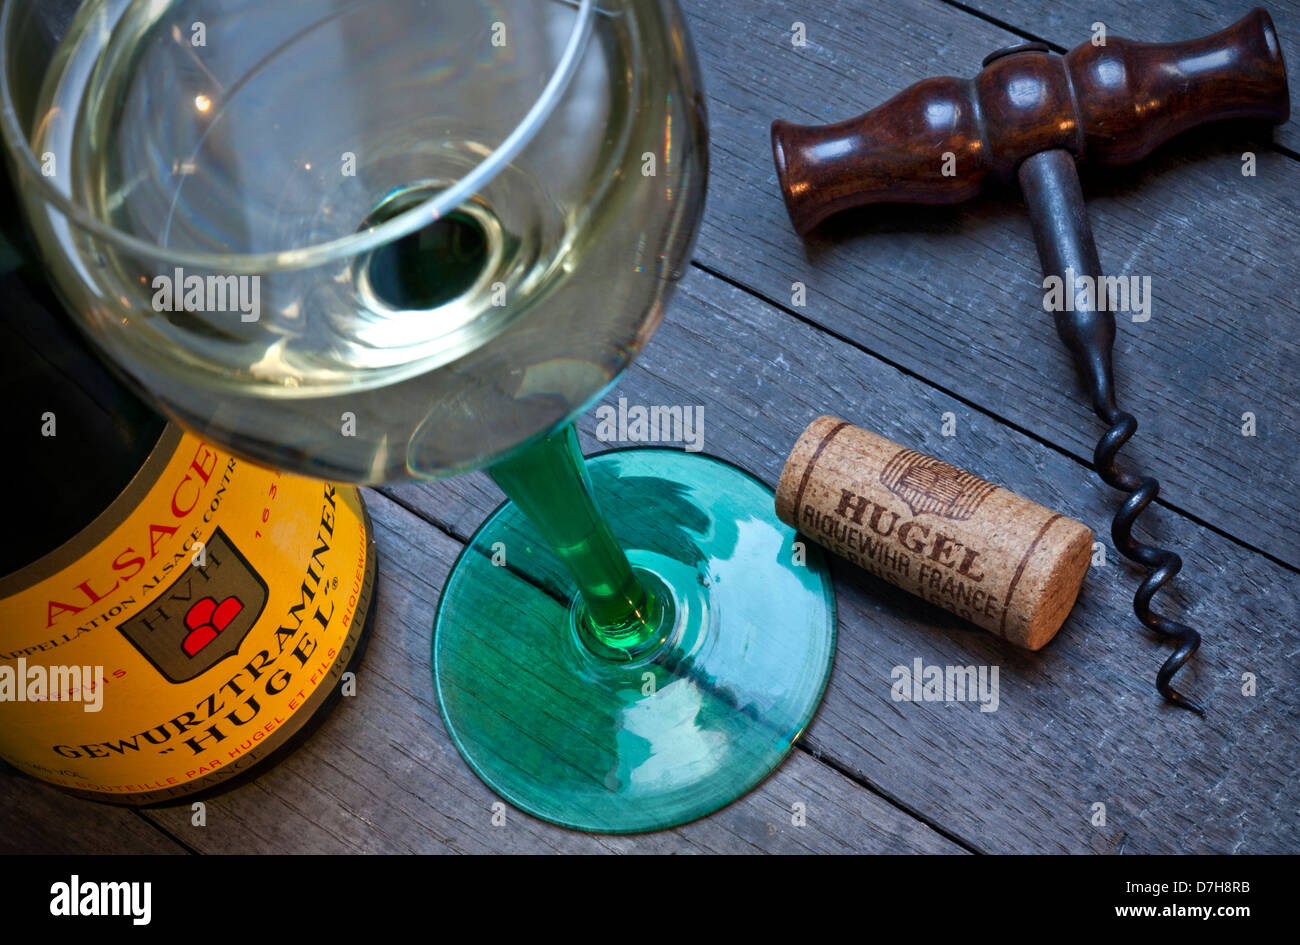 Gewurztraminer white wine bottle glass and cork in wine tasting situation of renowned producer 'Hugel'  Riquewihr Stock Photo